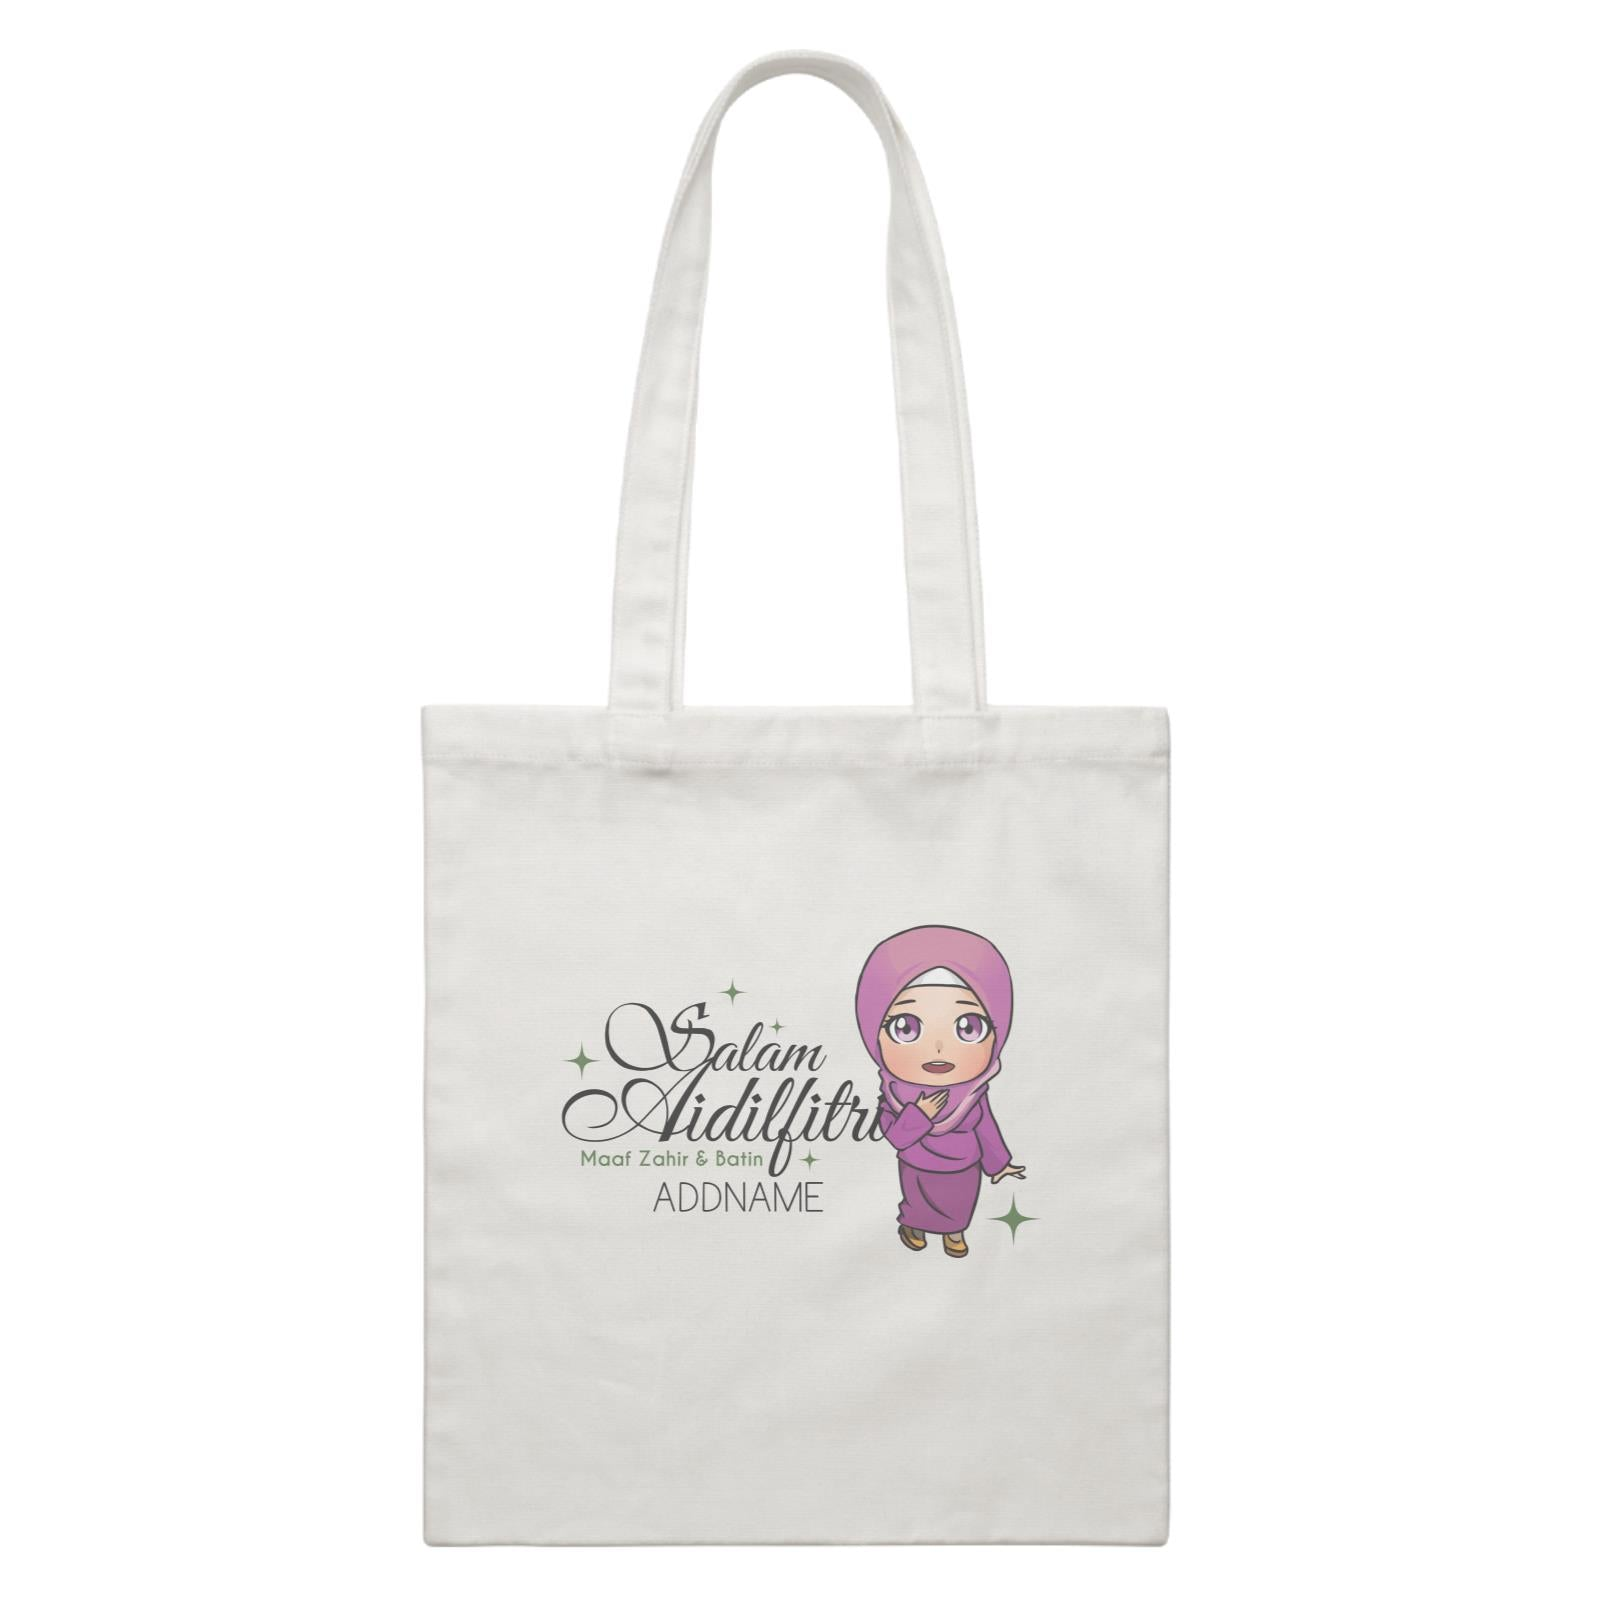 Raya Chibi Wishes Woman Addname Wishes Everyone Salam Aidilfitri Maaf Zahir & Batin White Canvas Bag